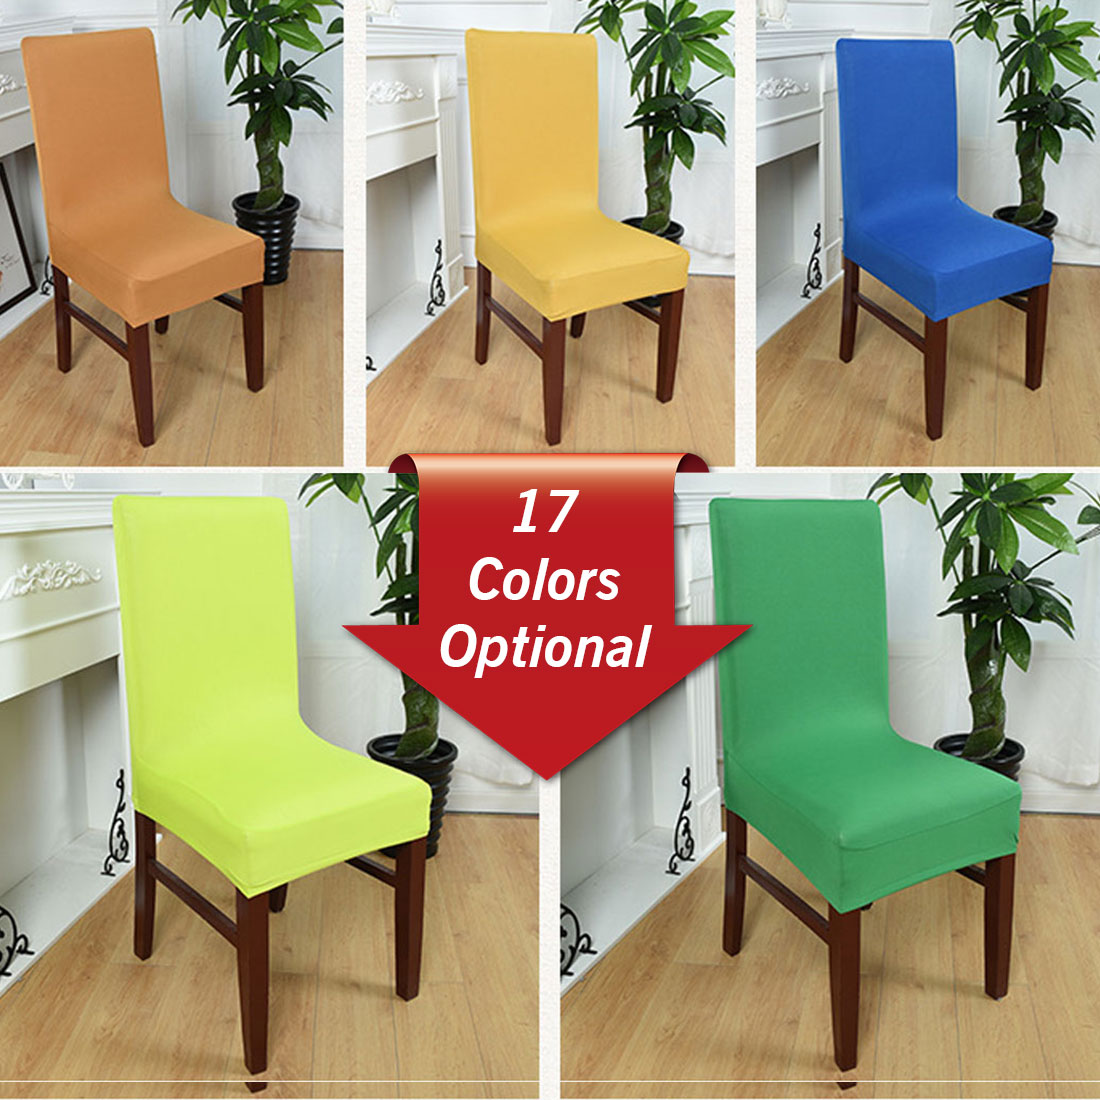 Dining Chair Slipcover Us 3 75 5 Off Spandex Elastic Dining Chair Slipcover Solid Colors Removable Anti Dirty Kitchen Seat Case Stretch Chair Cover For Banquet In Chair